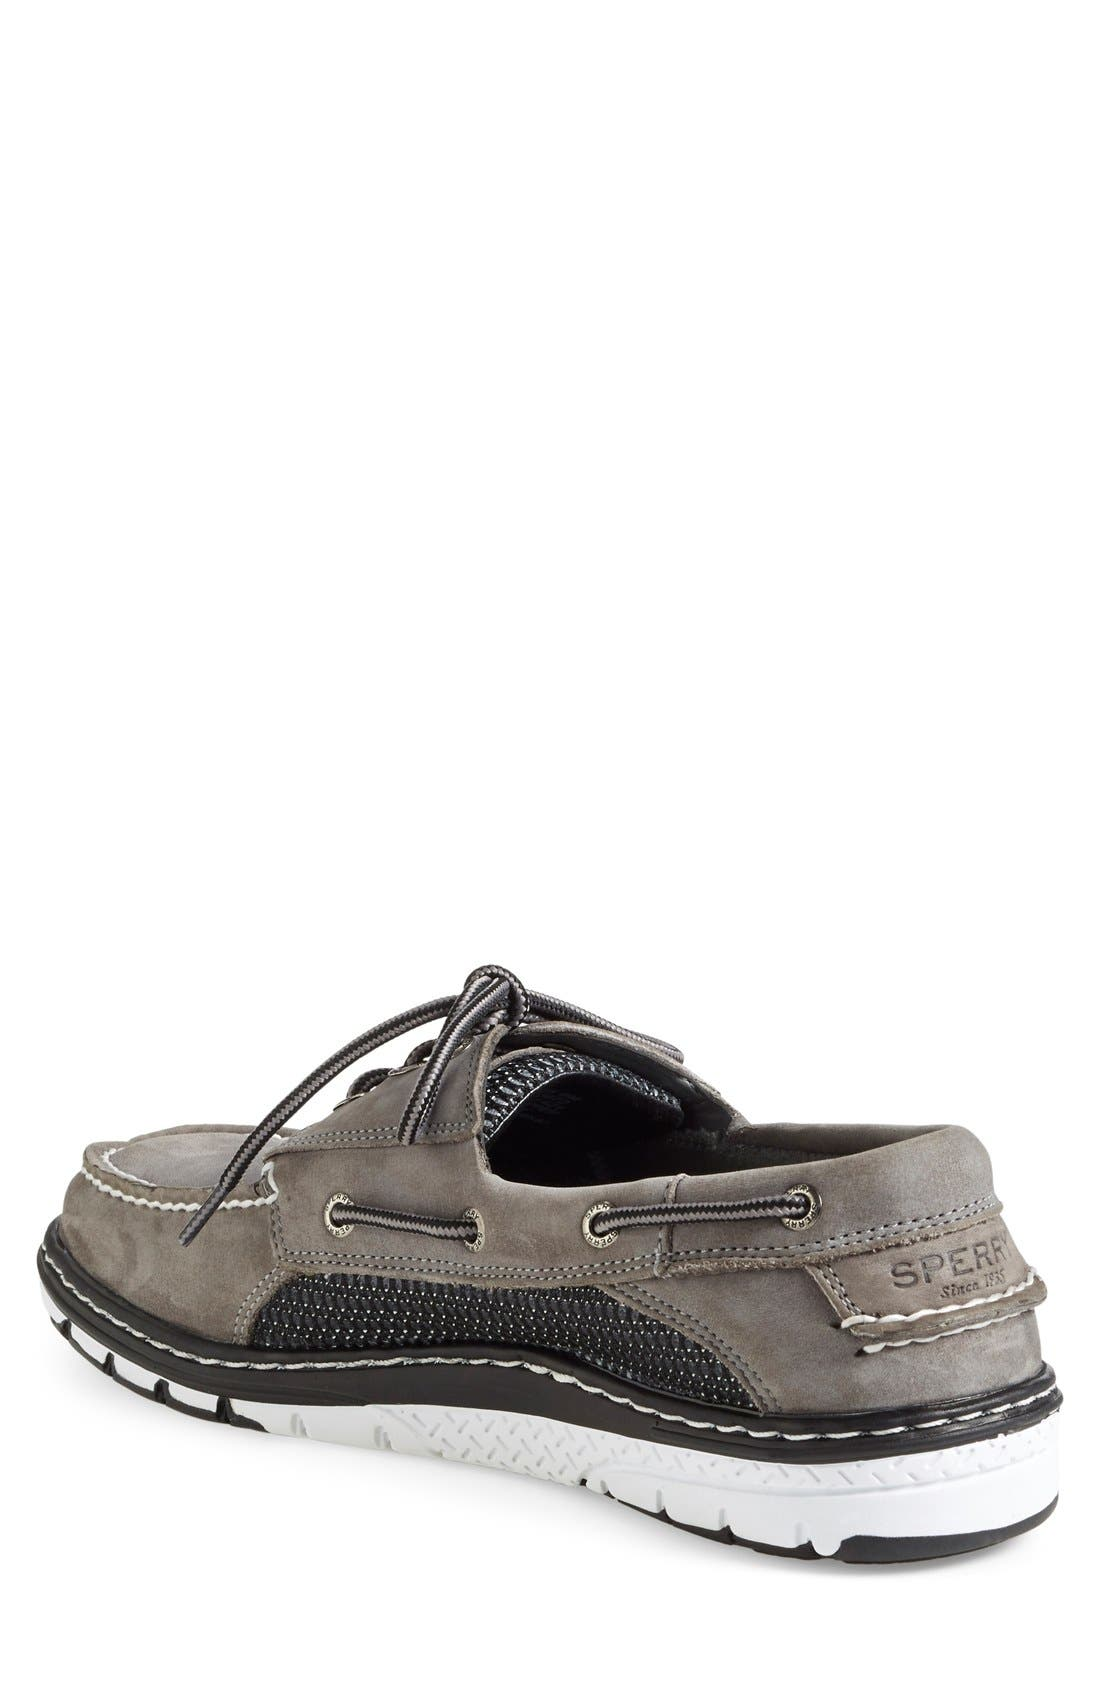 'Billfish Ultralite' Boat Shoe,                             Alternate thumbnail 66, color,